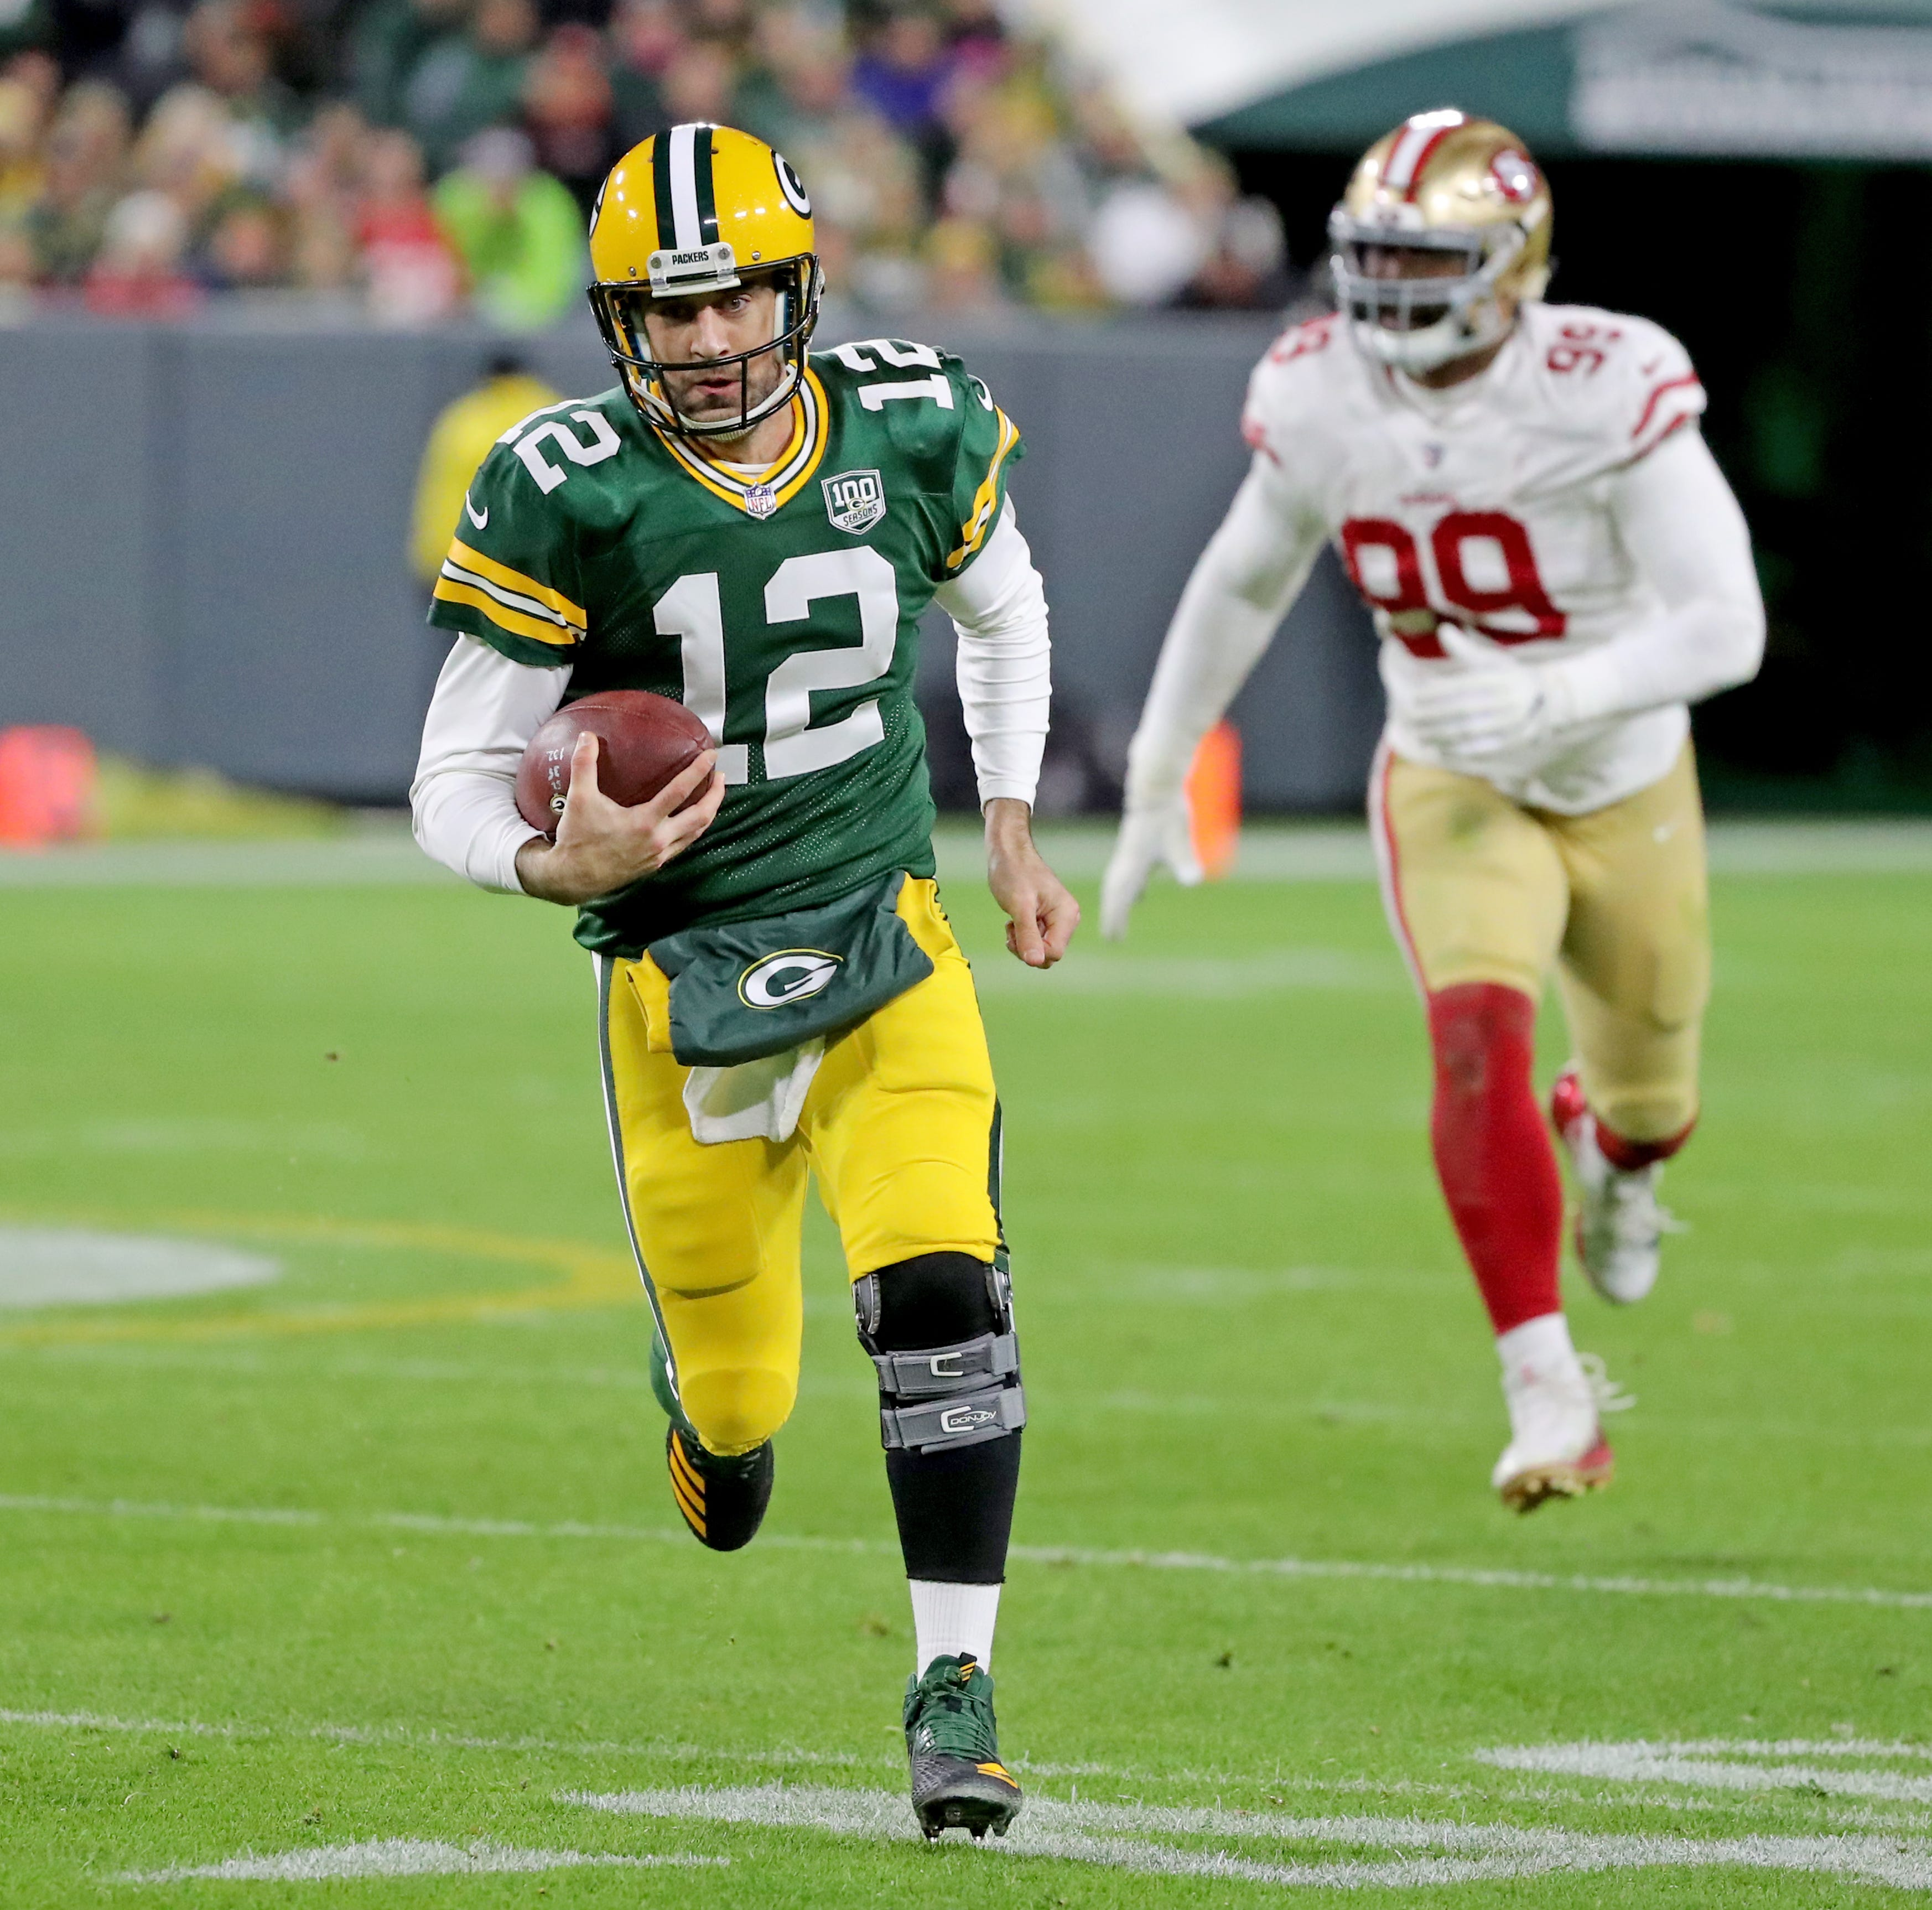 Dougherty: Packers find stunning way to save their season